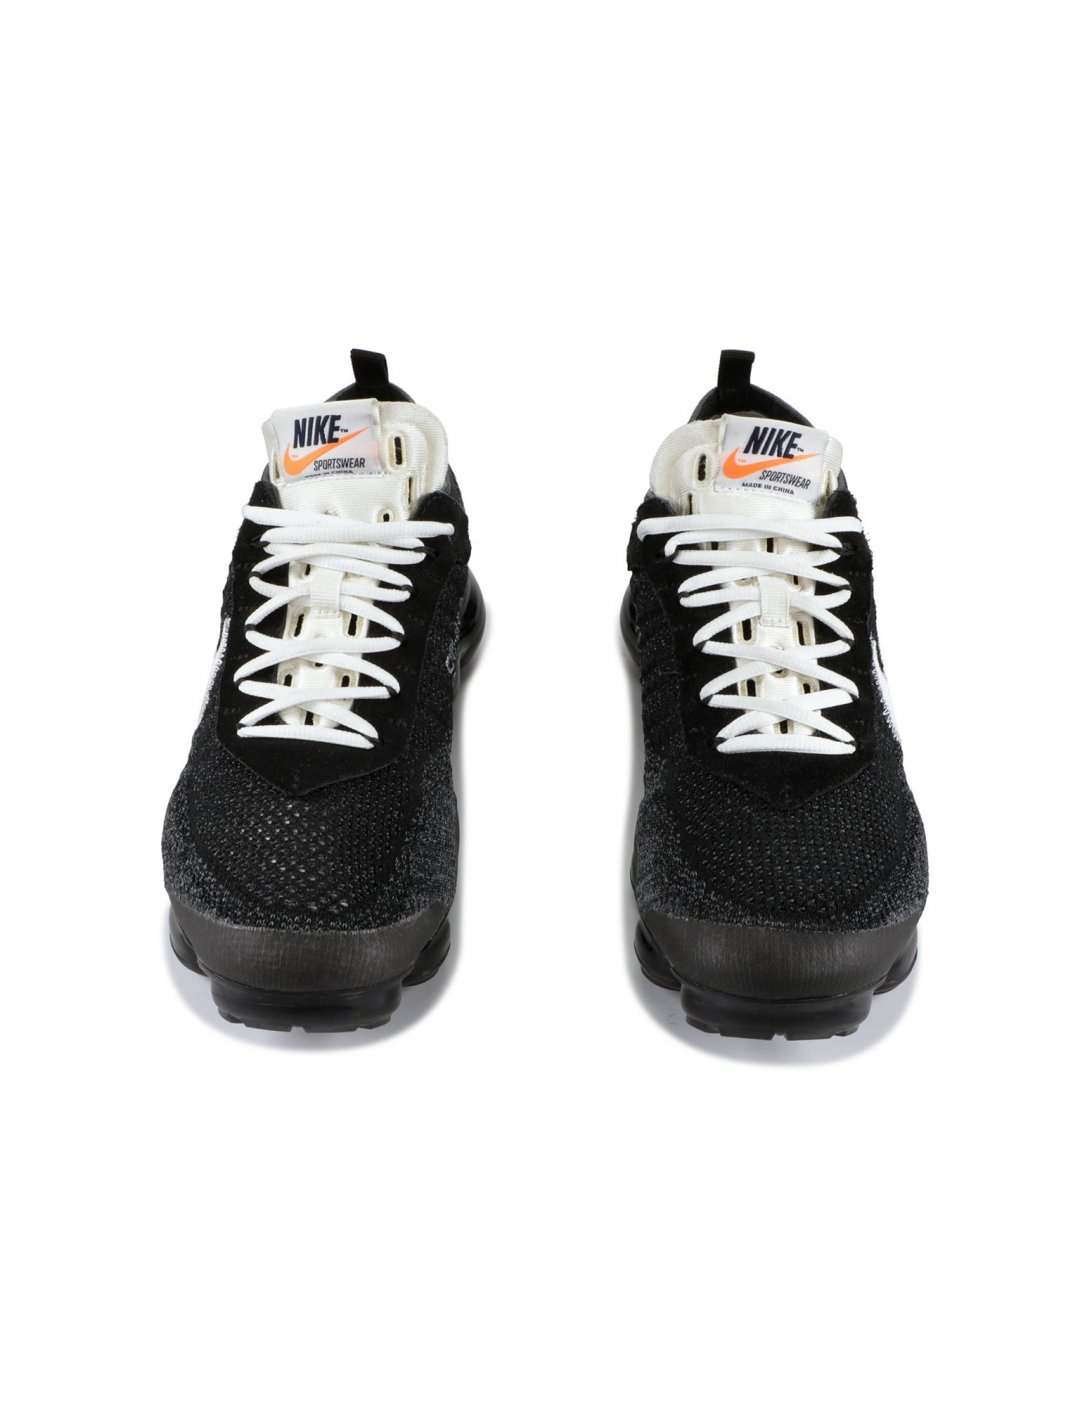 "B Young's Nike Air Vapormax {""id"":12,""product_section_id"":1,""name"":""Shoes"",""order"":12} Nike x Off-White"